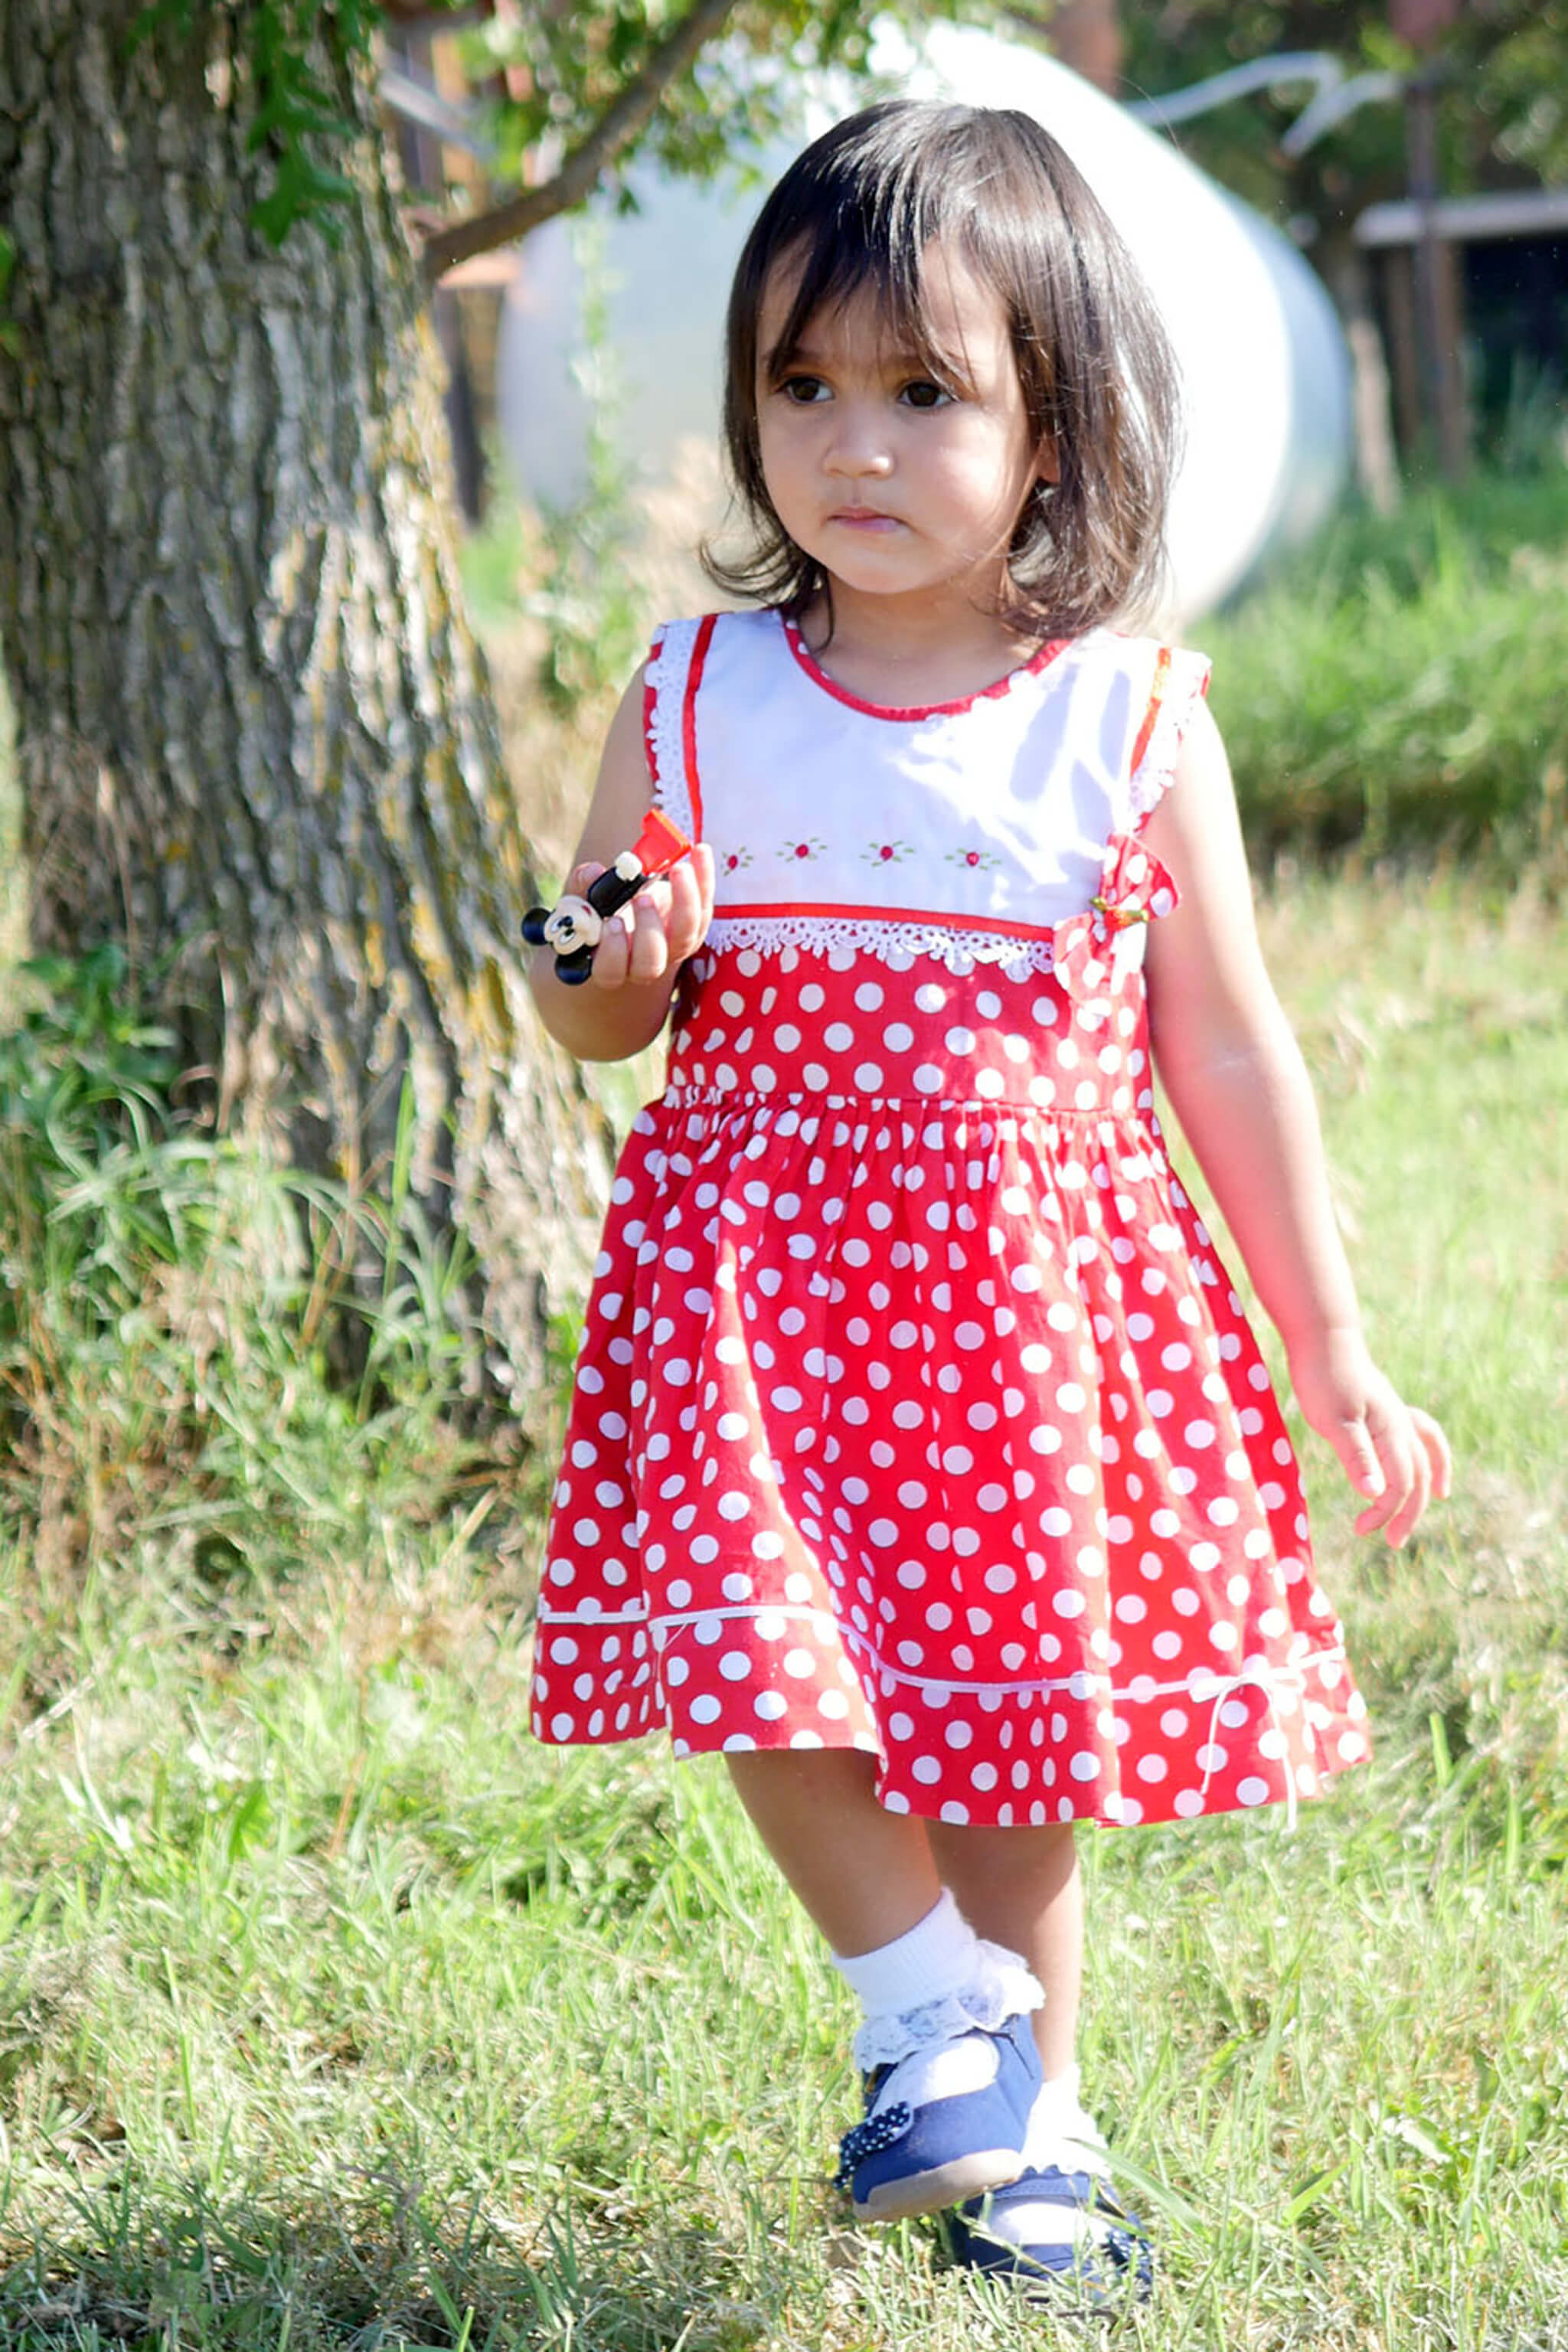 Little girl wearing the ethically made red polka dot Rosa dress in a garden